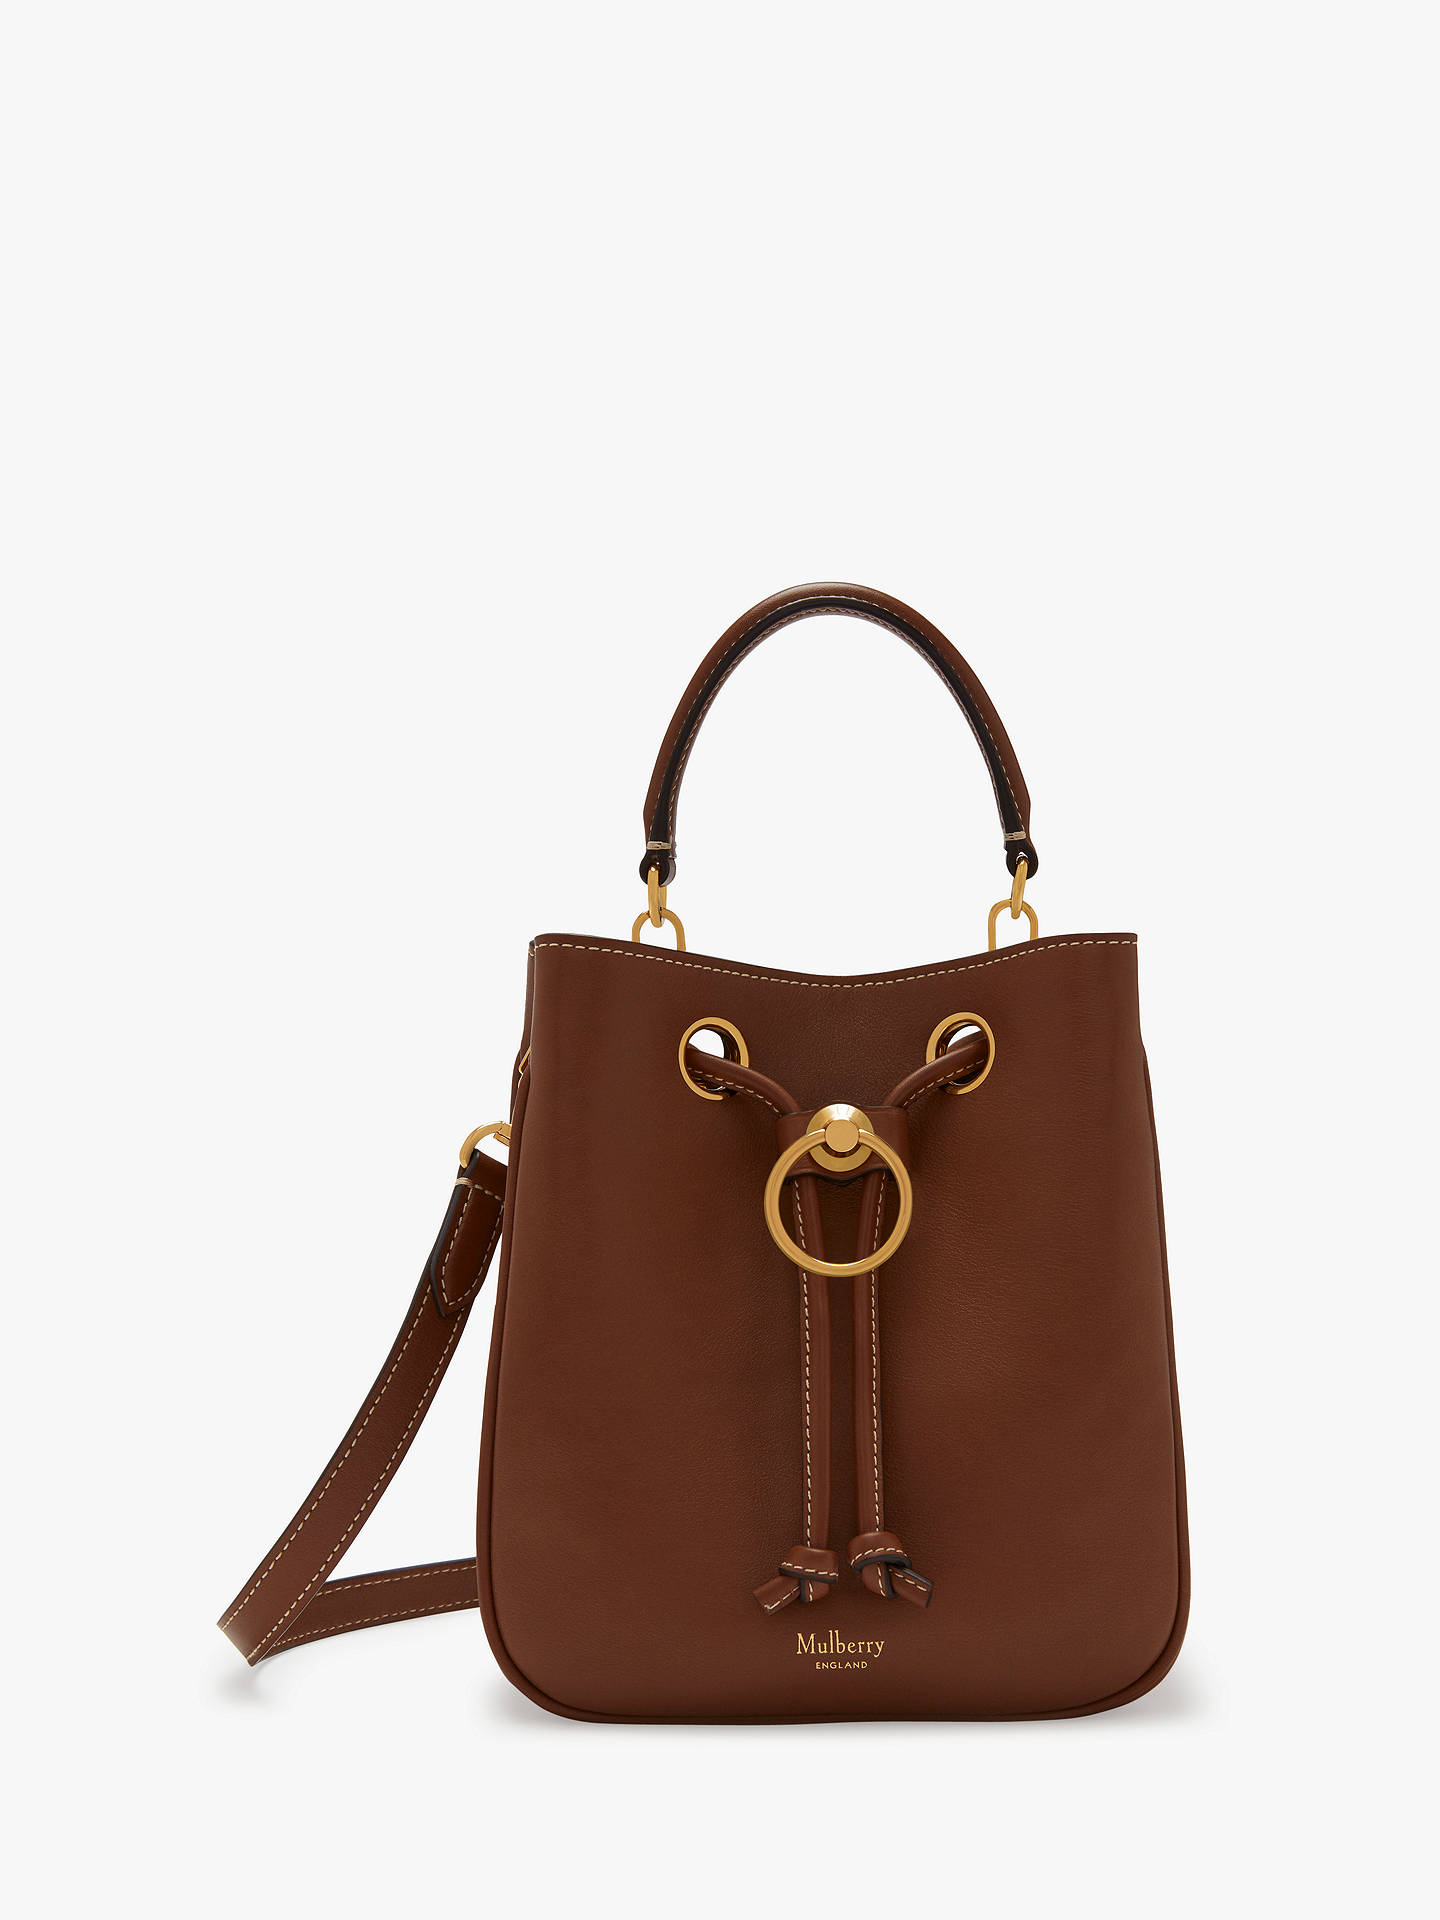 018e8a7251 Buy Mulberry Small Hampstead Silky Calf Leather Handbag, Tan Online at  johnlewis.com ...